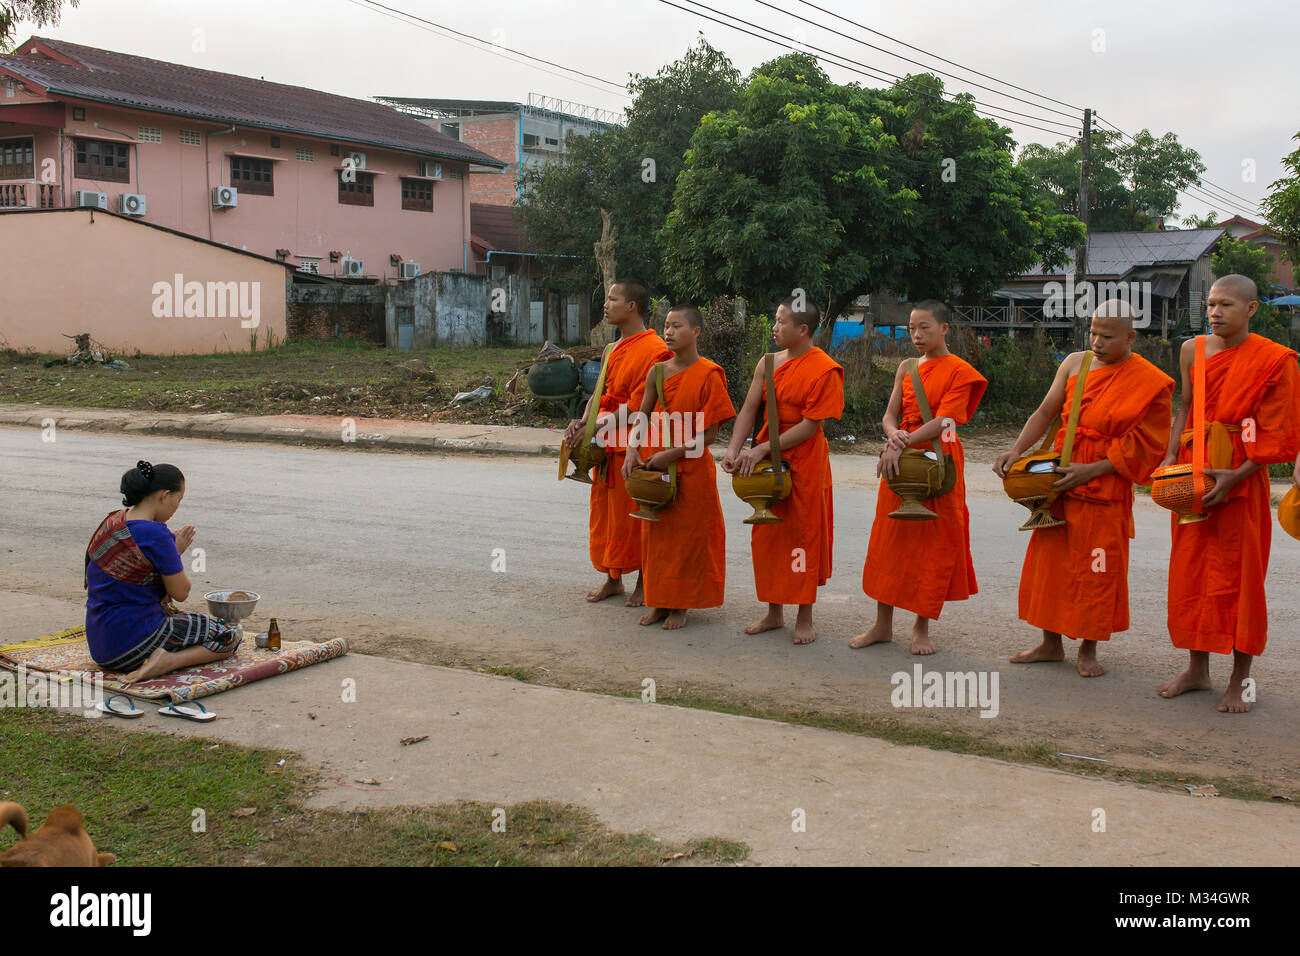 Vang Vieng, Laos - January 21, 2017: Buddhist monks collecting alms in the morning in Vang Vieng, Laos Stock Photo